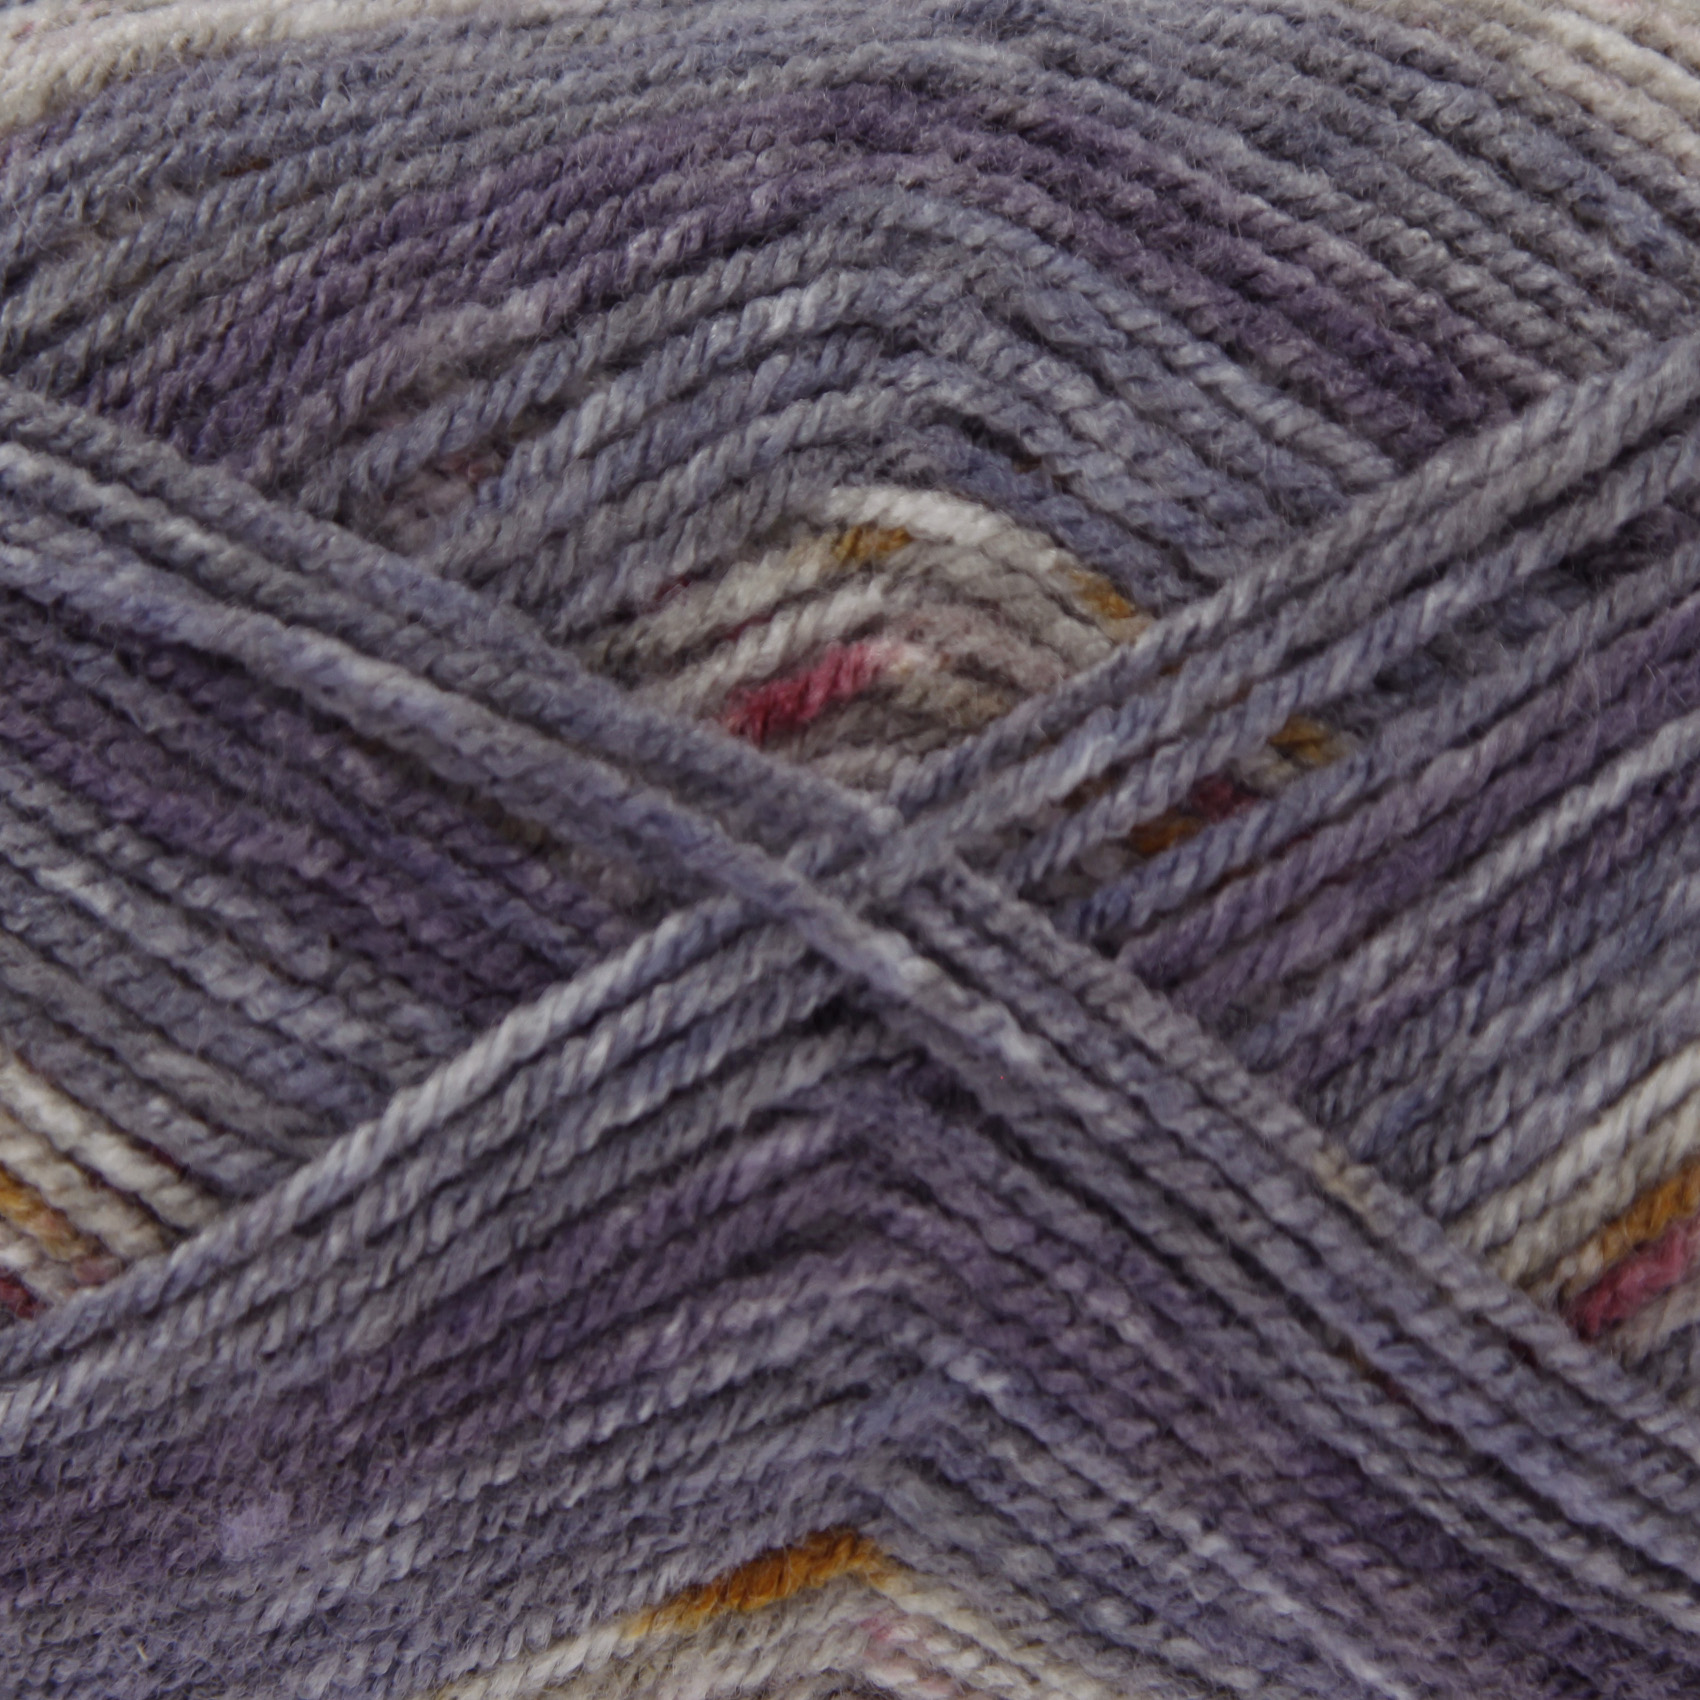 Double Knitting Wool : ... -Splash-DK-Double-Knitting-Wool-King-Cole-Premium-Acrylic-Soft-Yarn